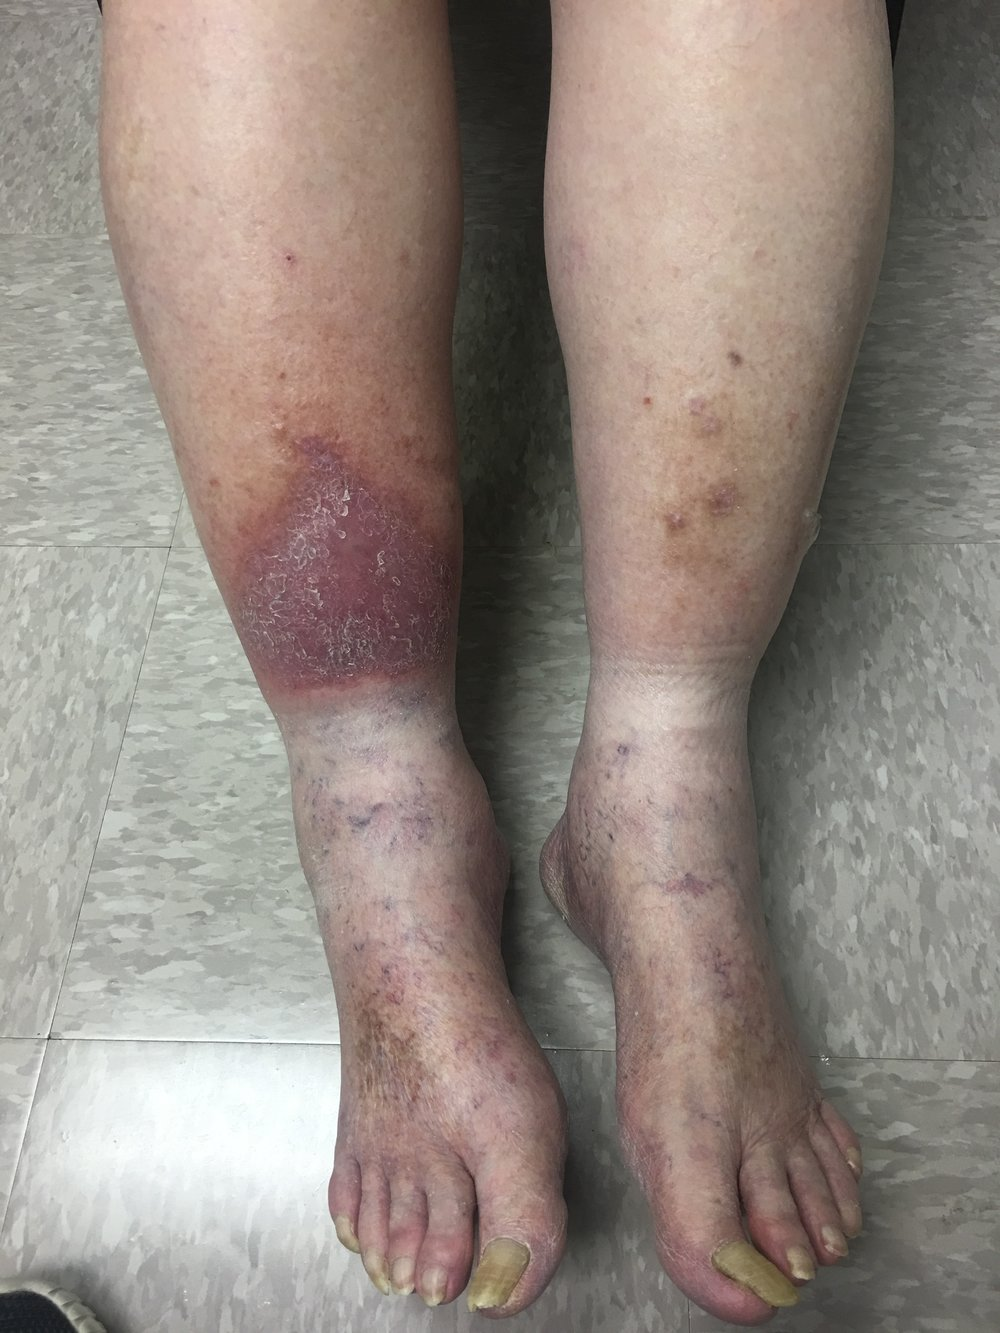 Is this your leg?Many venous stasis ulcers or skin ulcers begin like this and progress like below. We treat the cause of the ulcer so they heal and dont recur. -